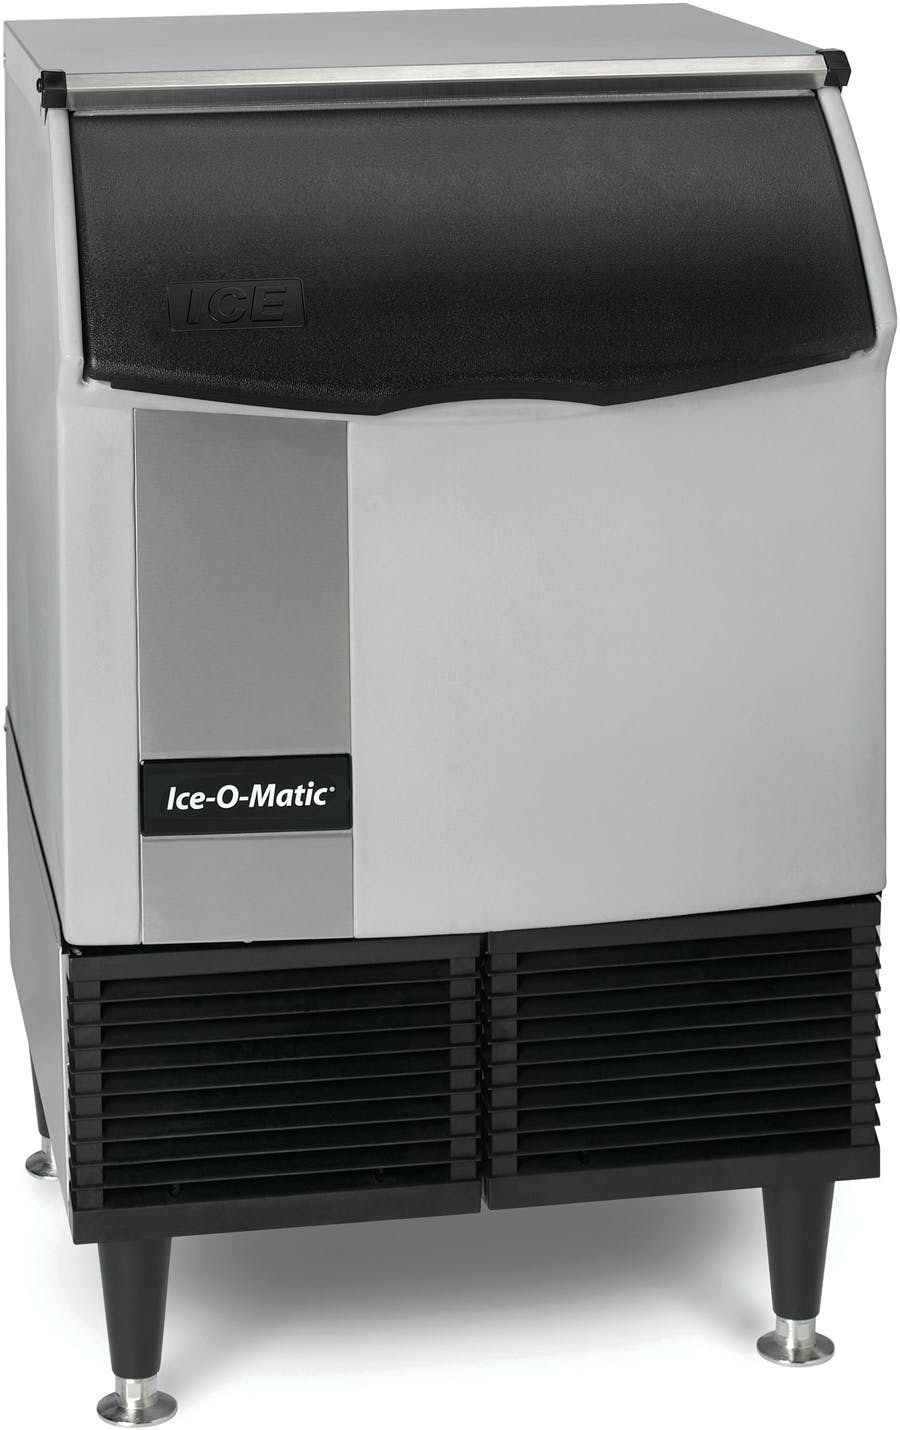 Iceomatic ICEU220HA Undercounter Half Cube Ice Maker - 238-lbs/day, Air Cooled, 115v. Built-In Bin Ice machine sold by TheRDStore.com